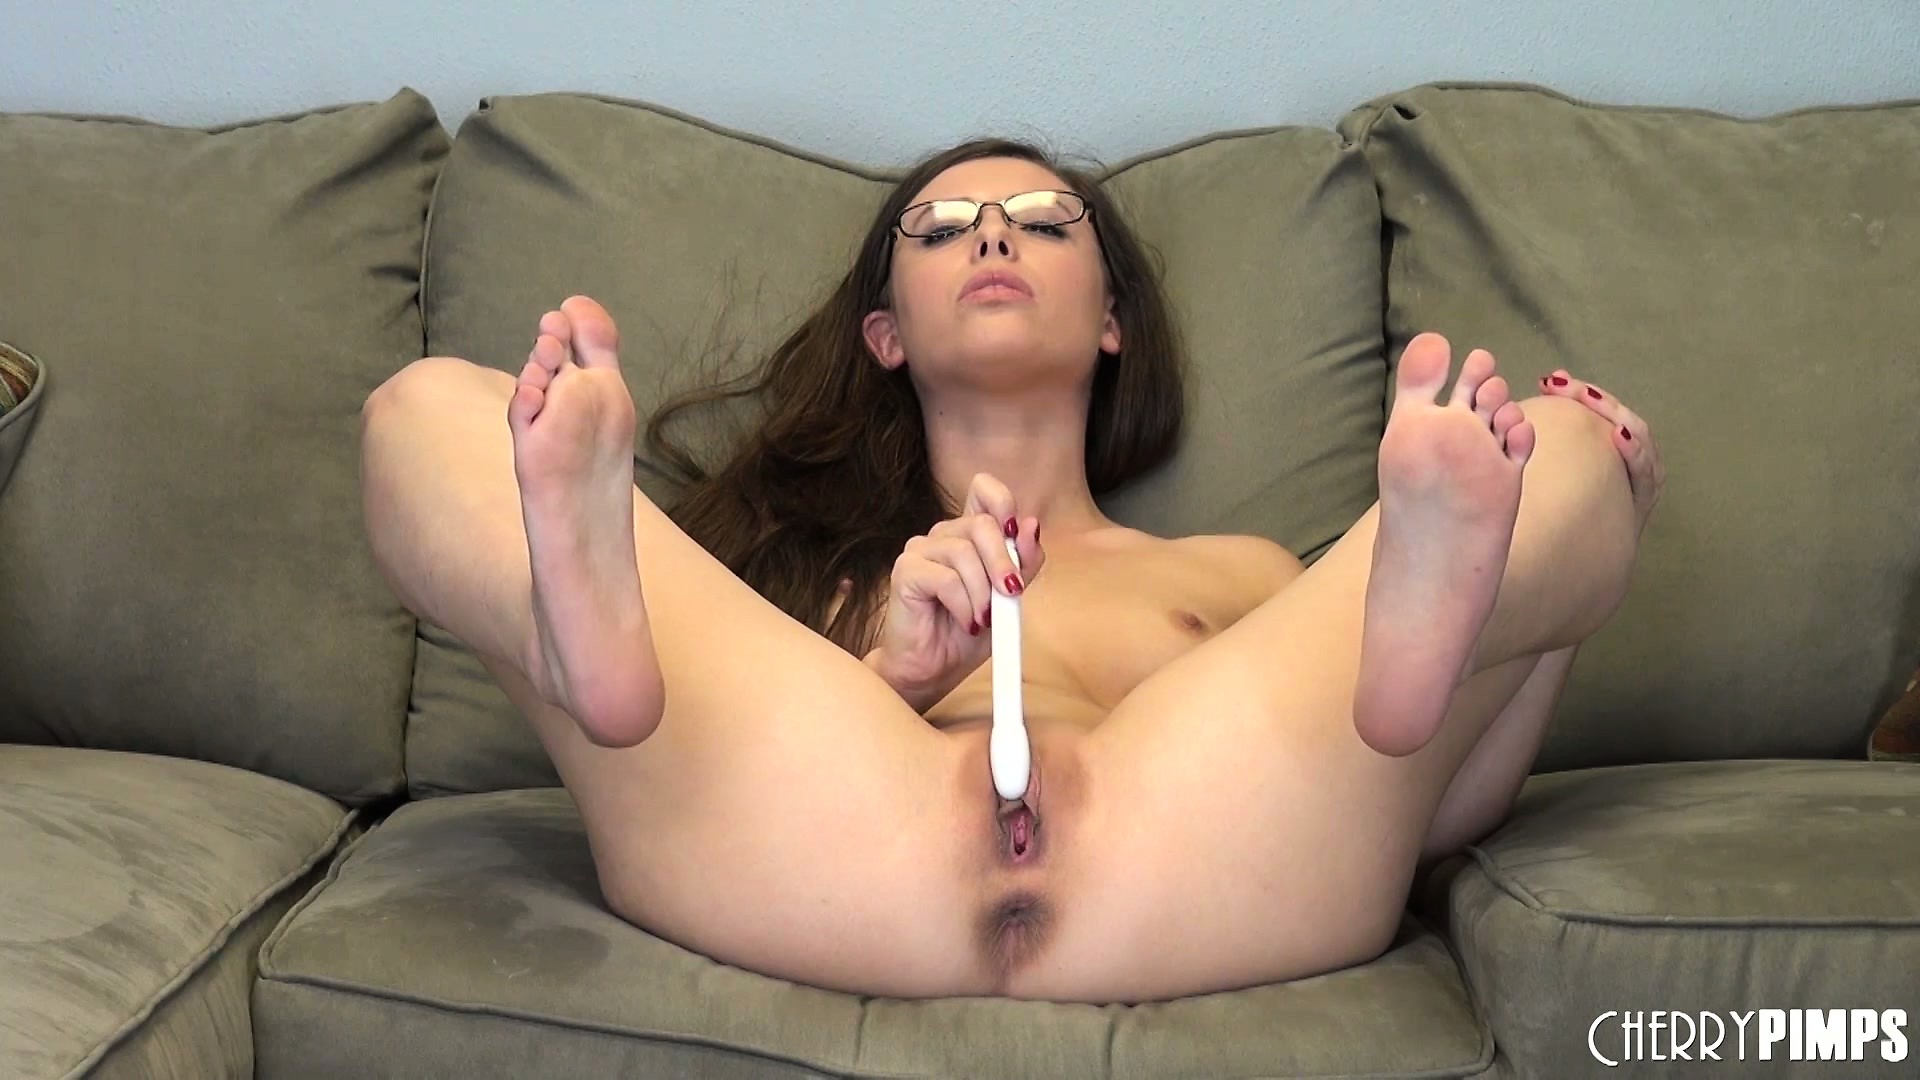 Porno Video of Casey Calvert Should Teach Every Beginner Of Basic Masturbation Technique